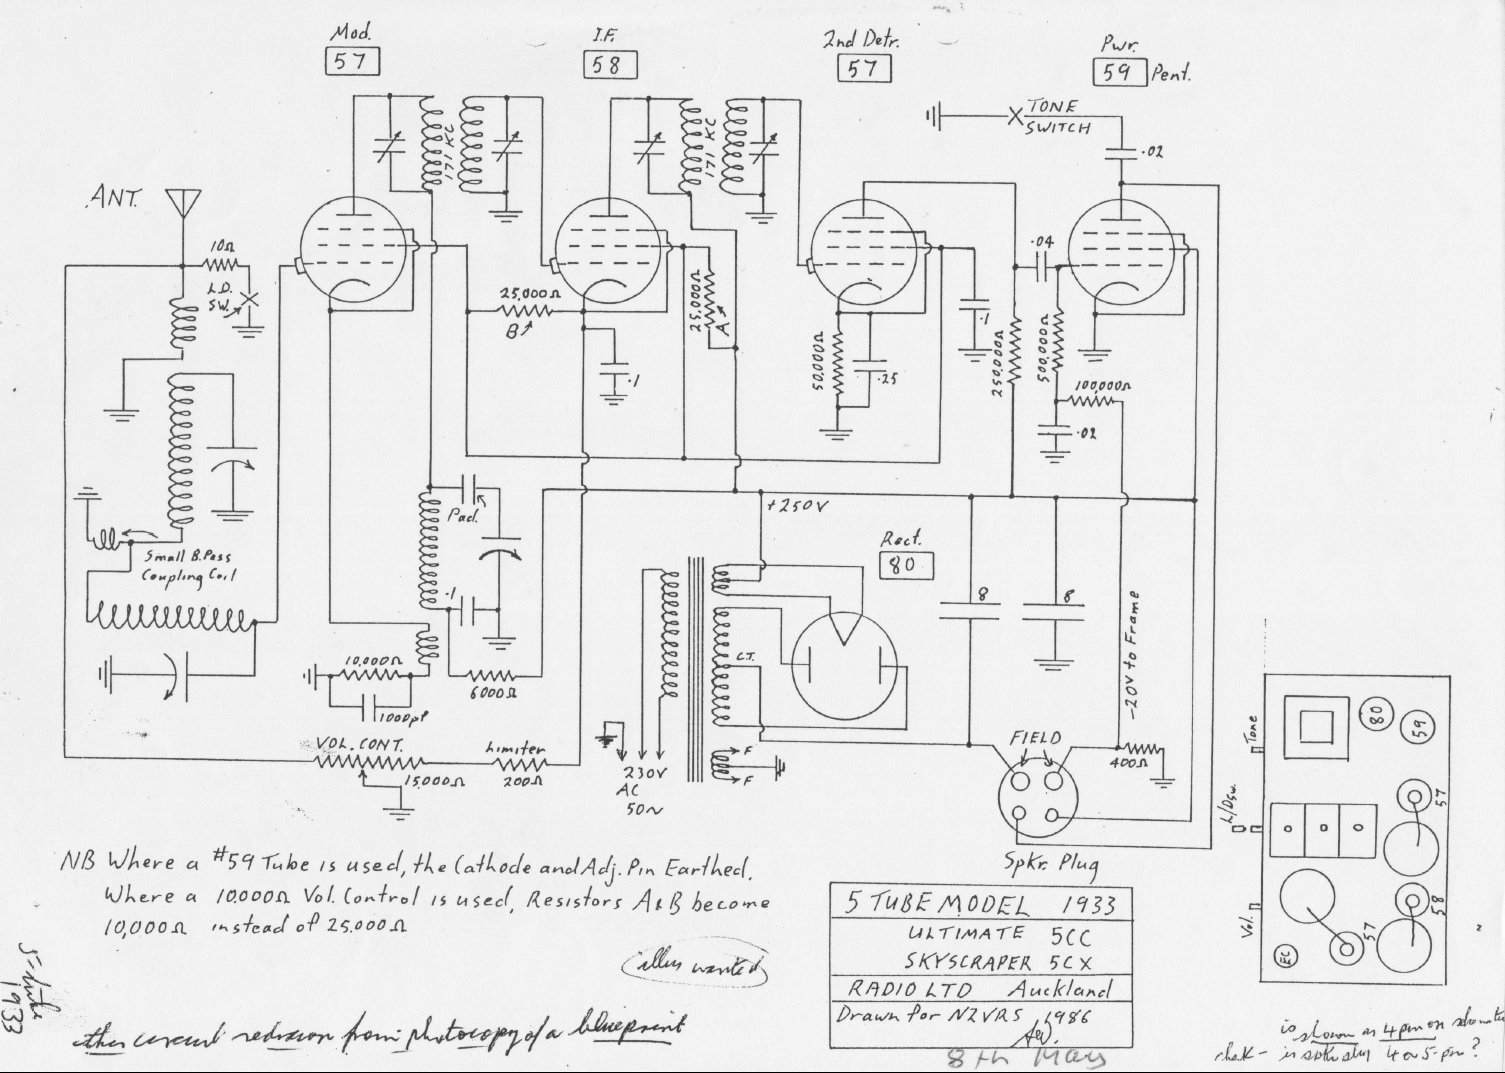 1933 Ultimate chassis code 5CC or 5CX schematic